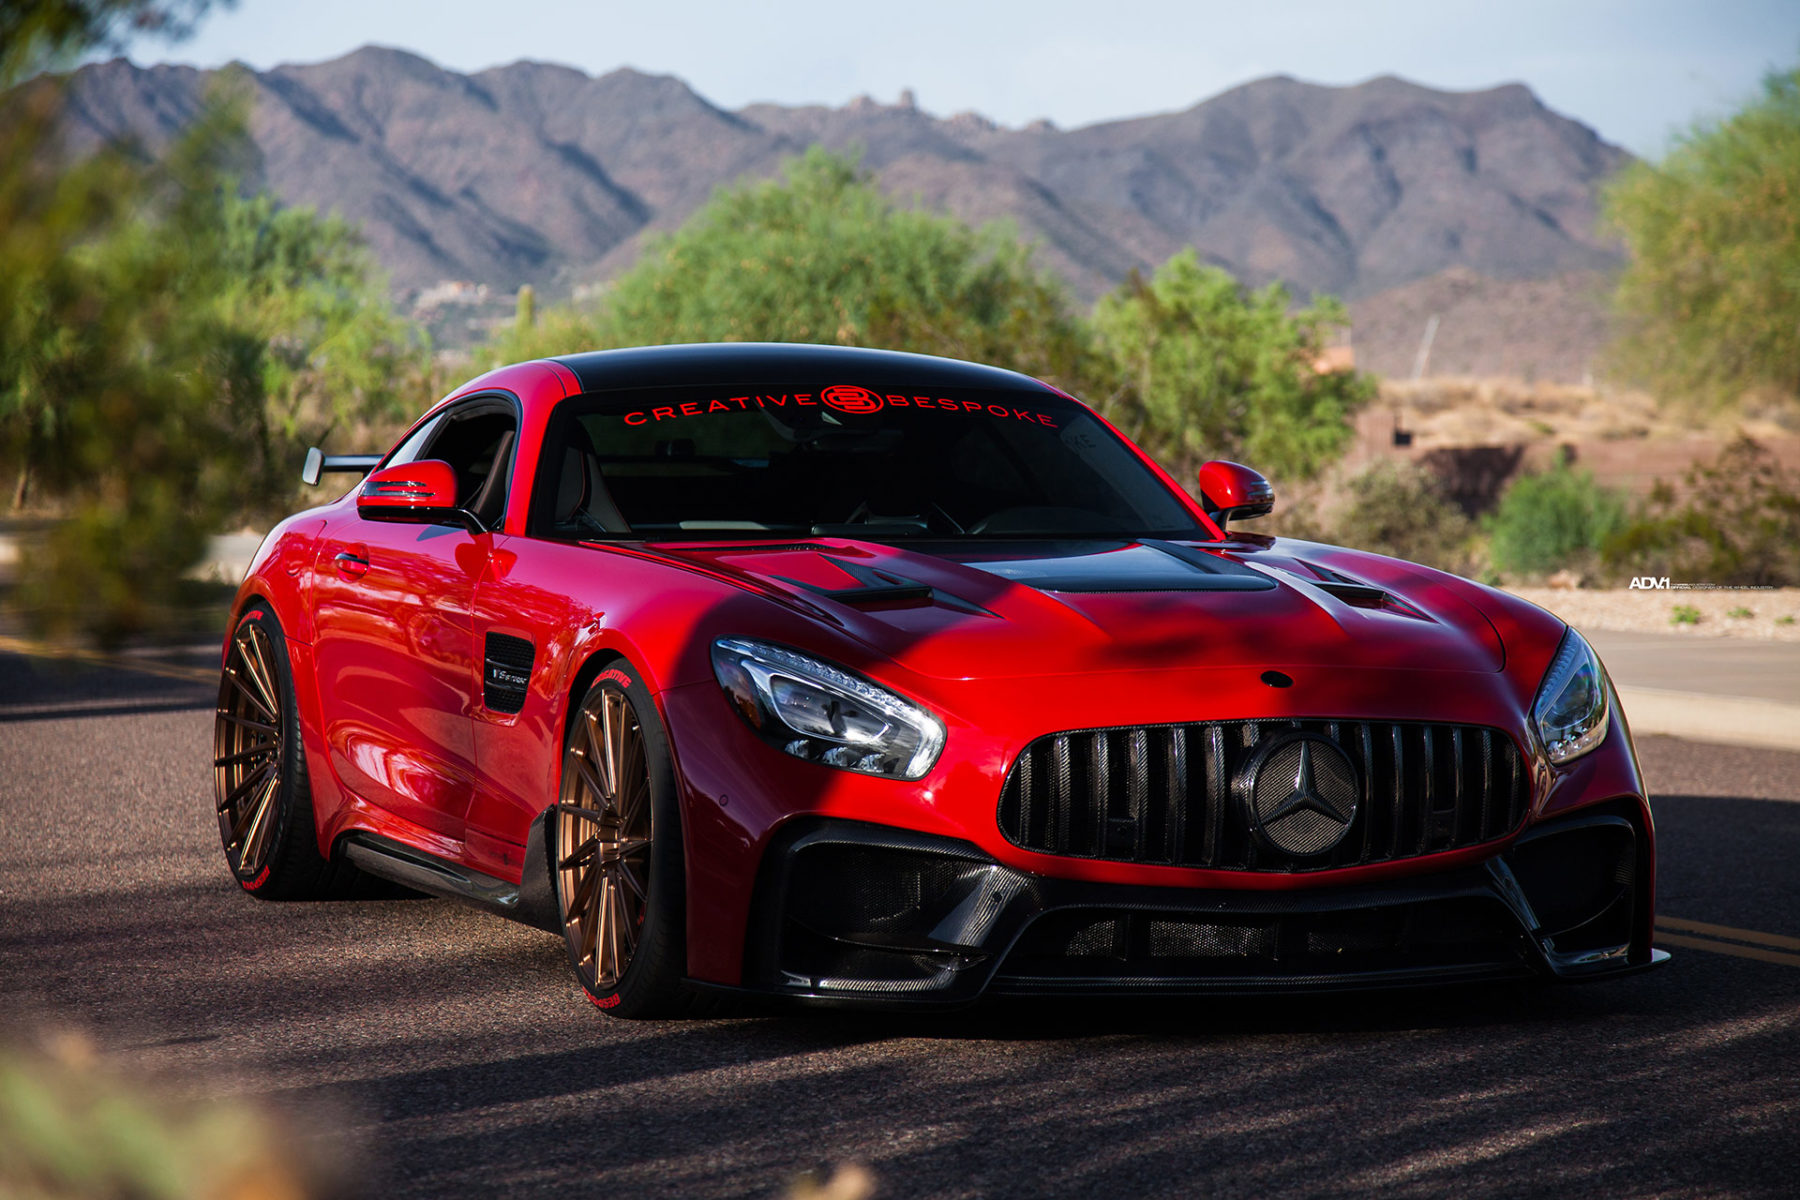 Car tuning studio Creative Bespoke has decided to try and reimagine the Mercedes-AMG GT S from the ground up